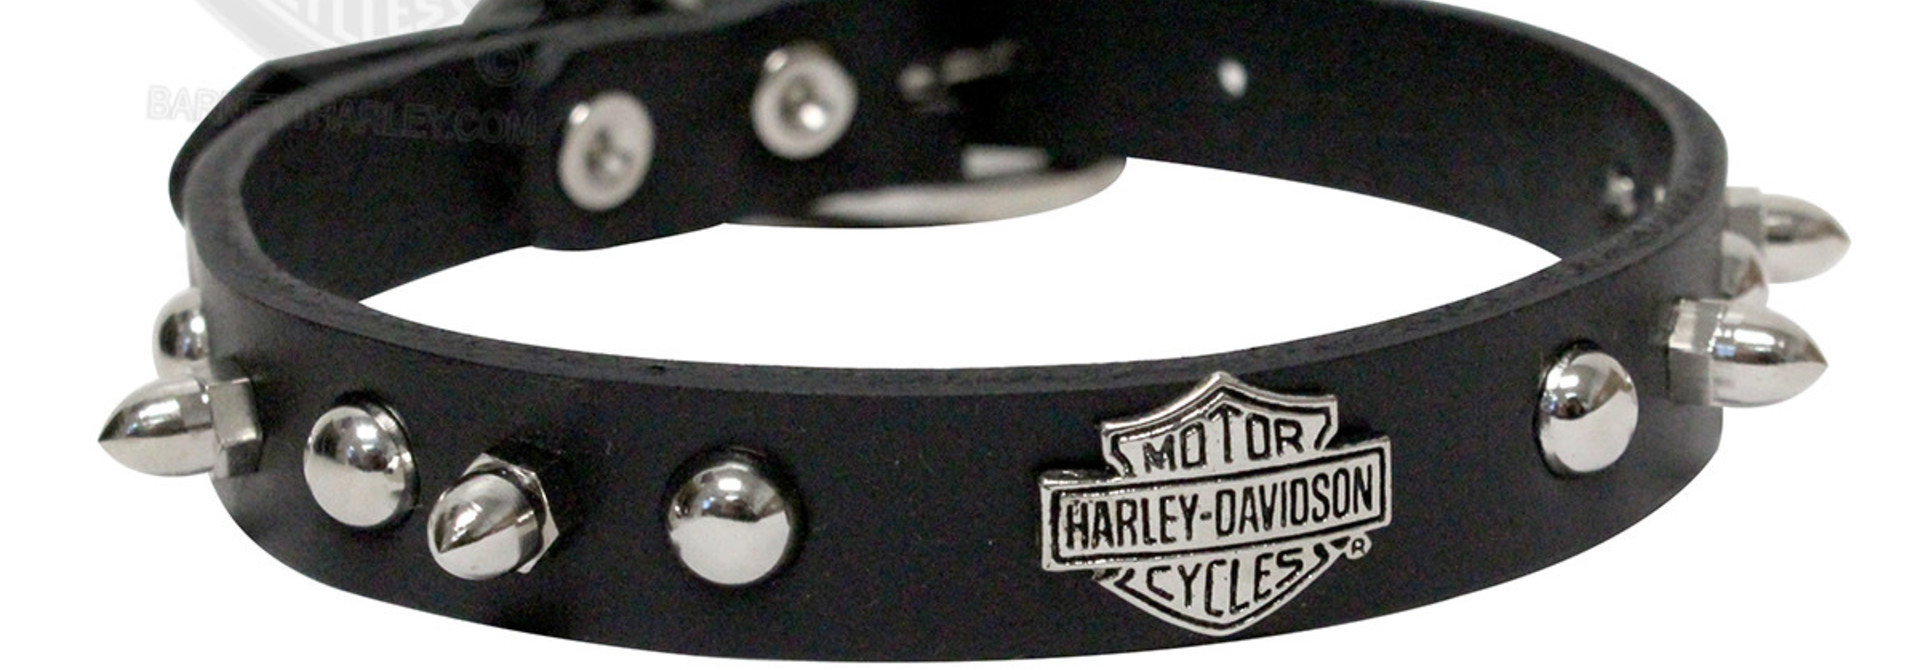 "Harley Davidson Spiked Collar Black 14"" x 5/8"""